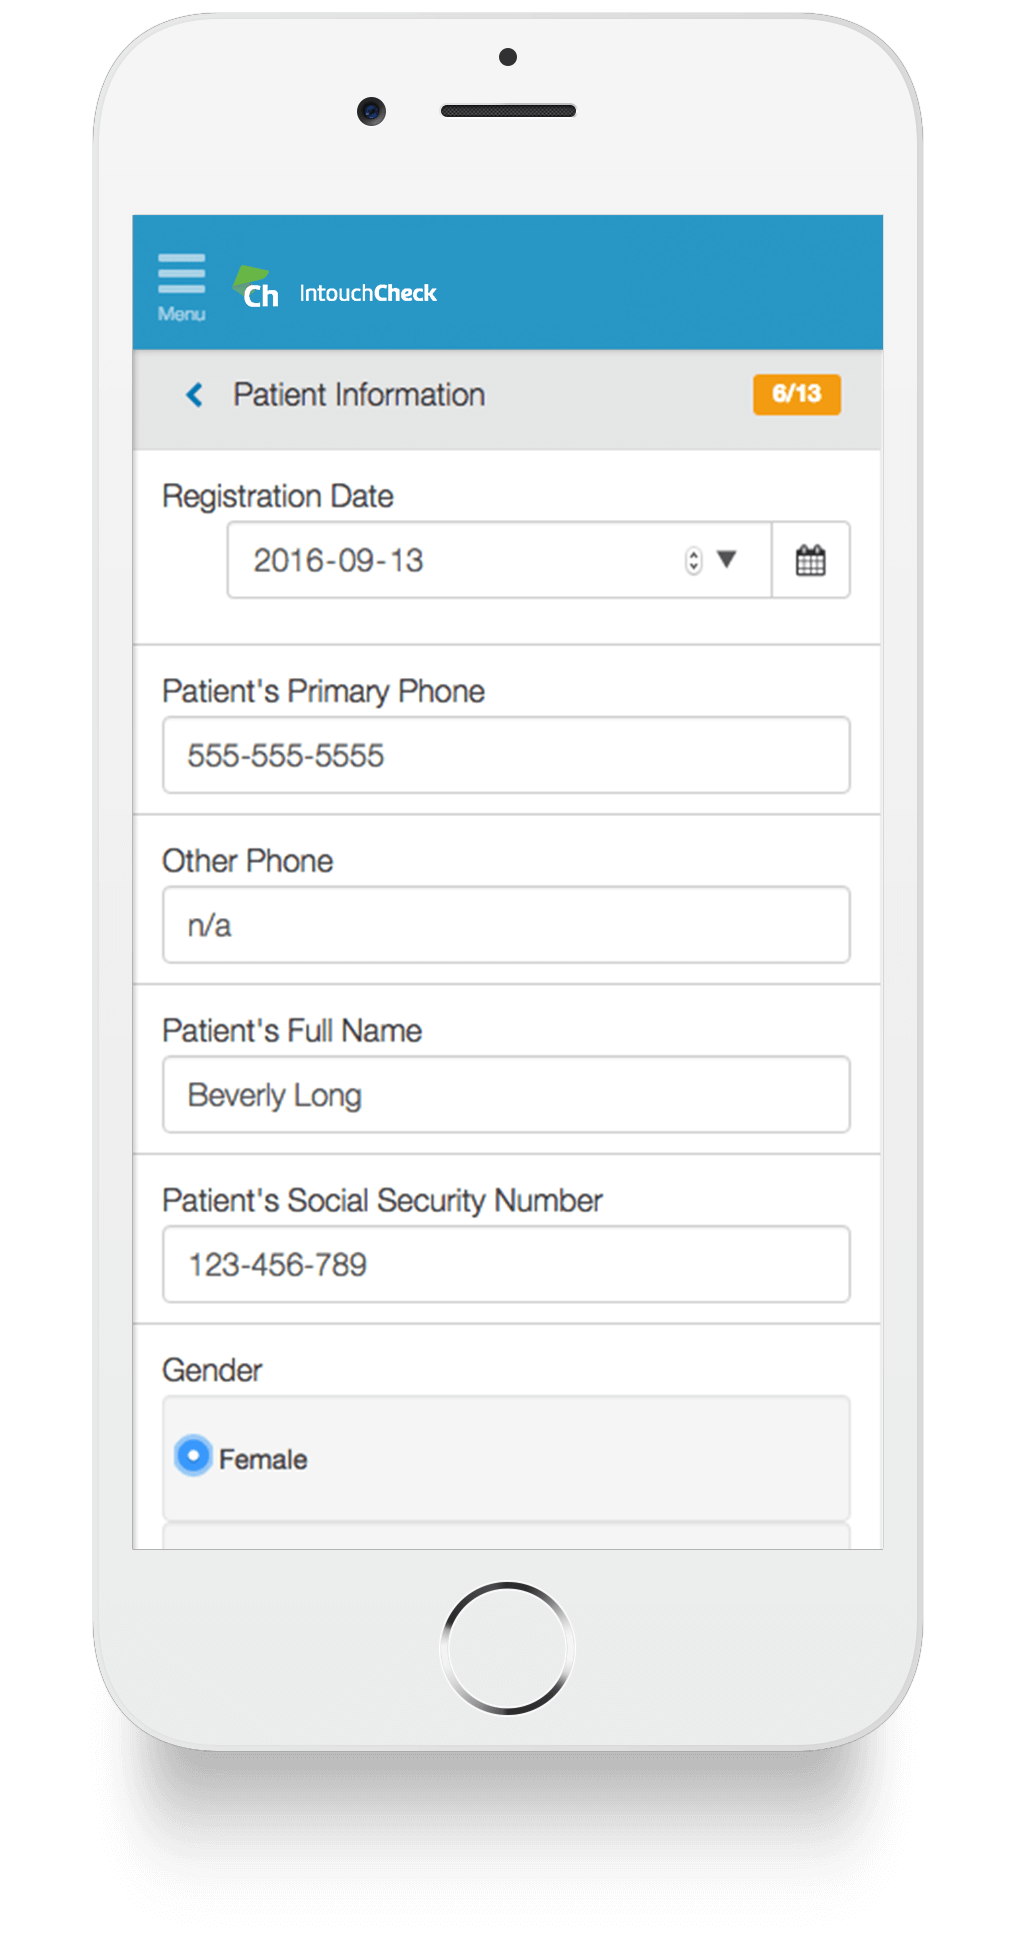 chiropractor-new-patient-registration-form.png